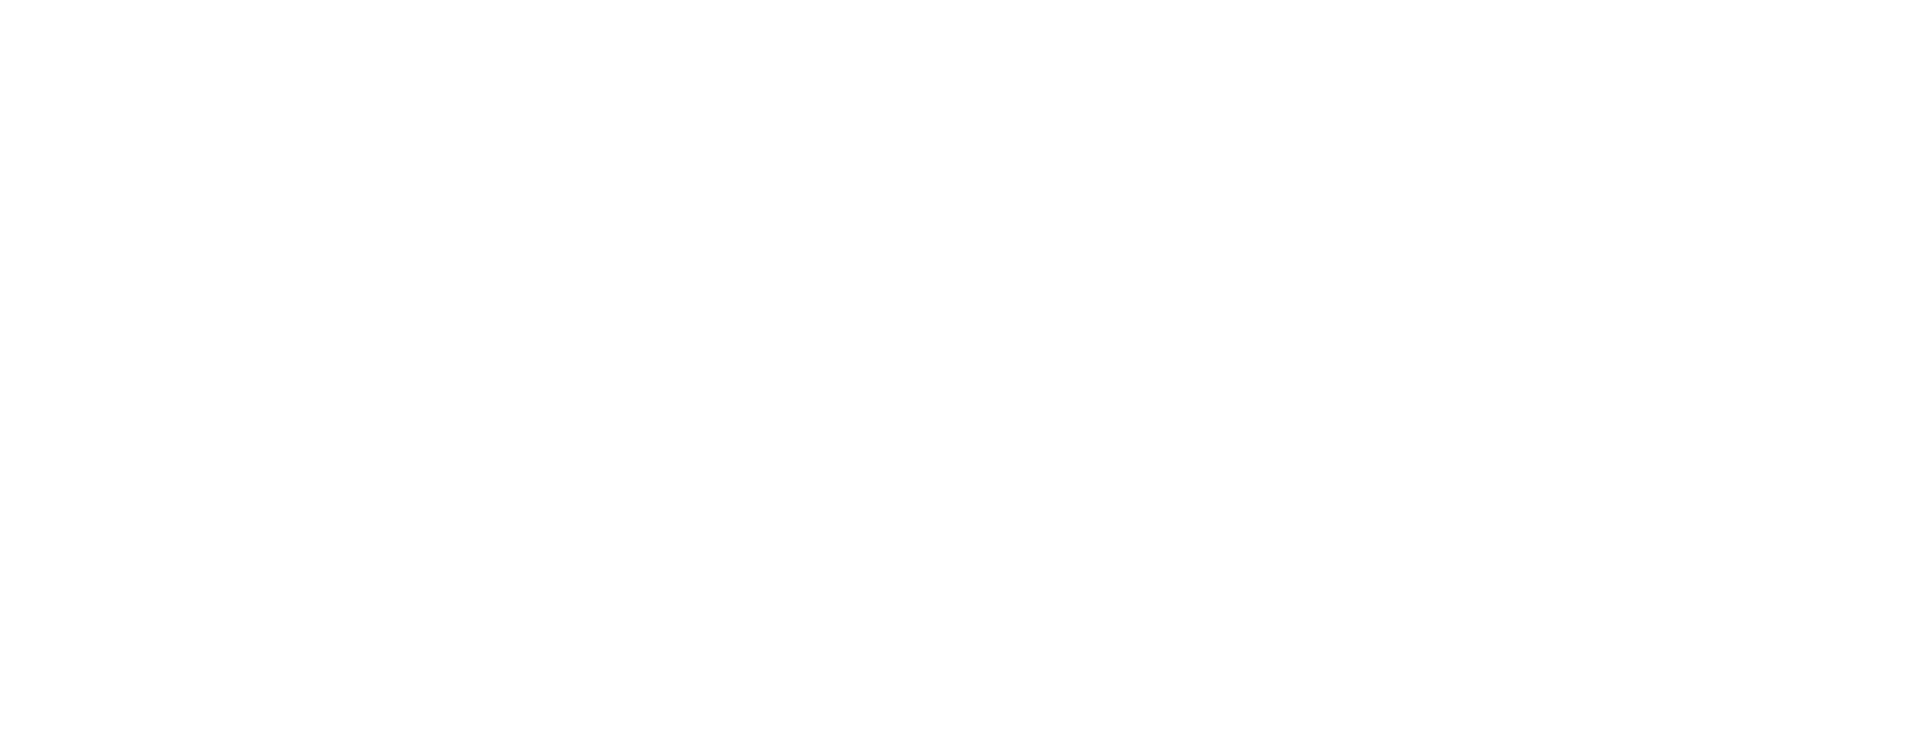 buddys-logo-houston-gay-bar-lgbtq-montrose